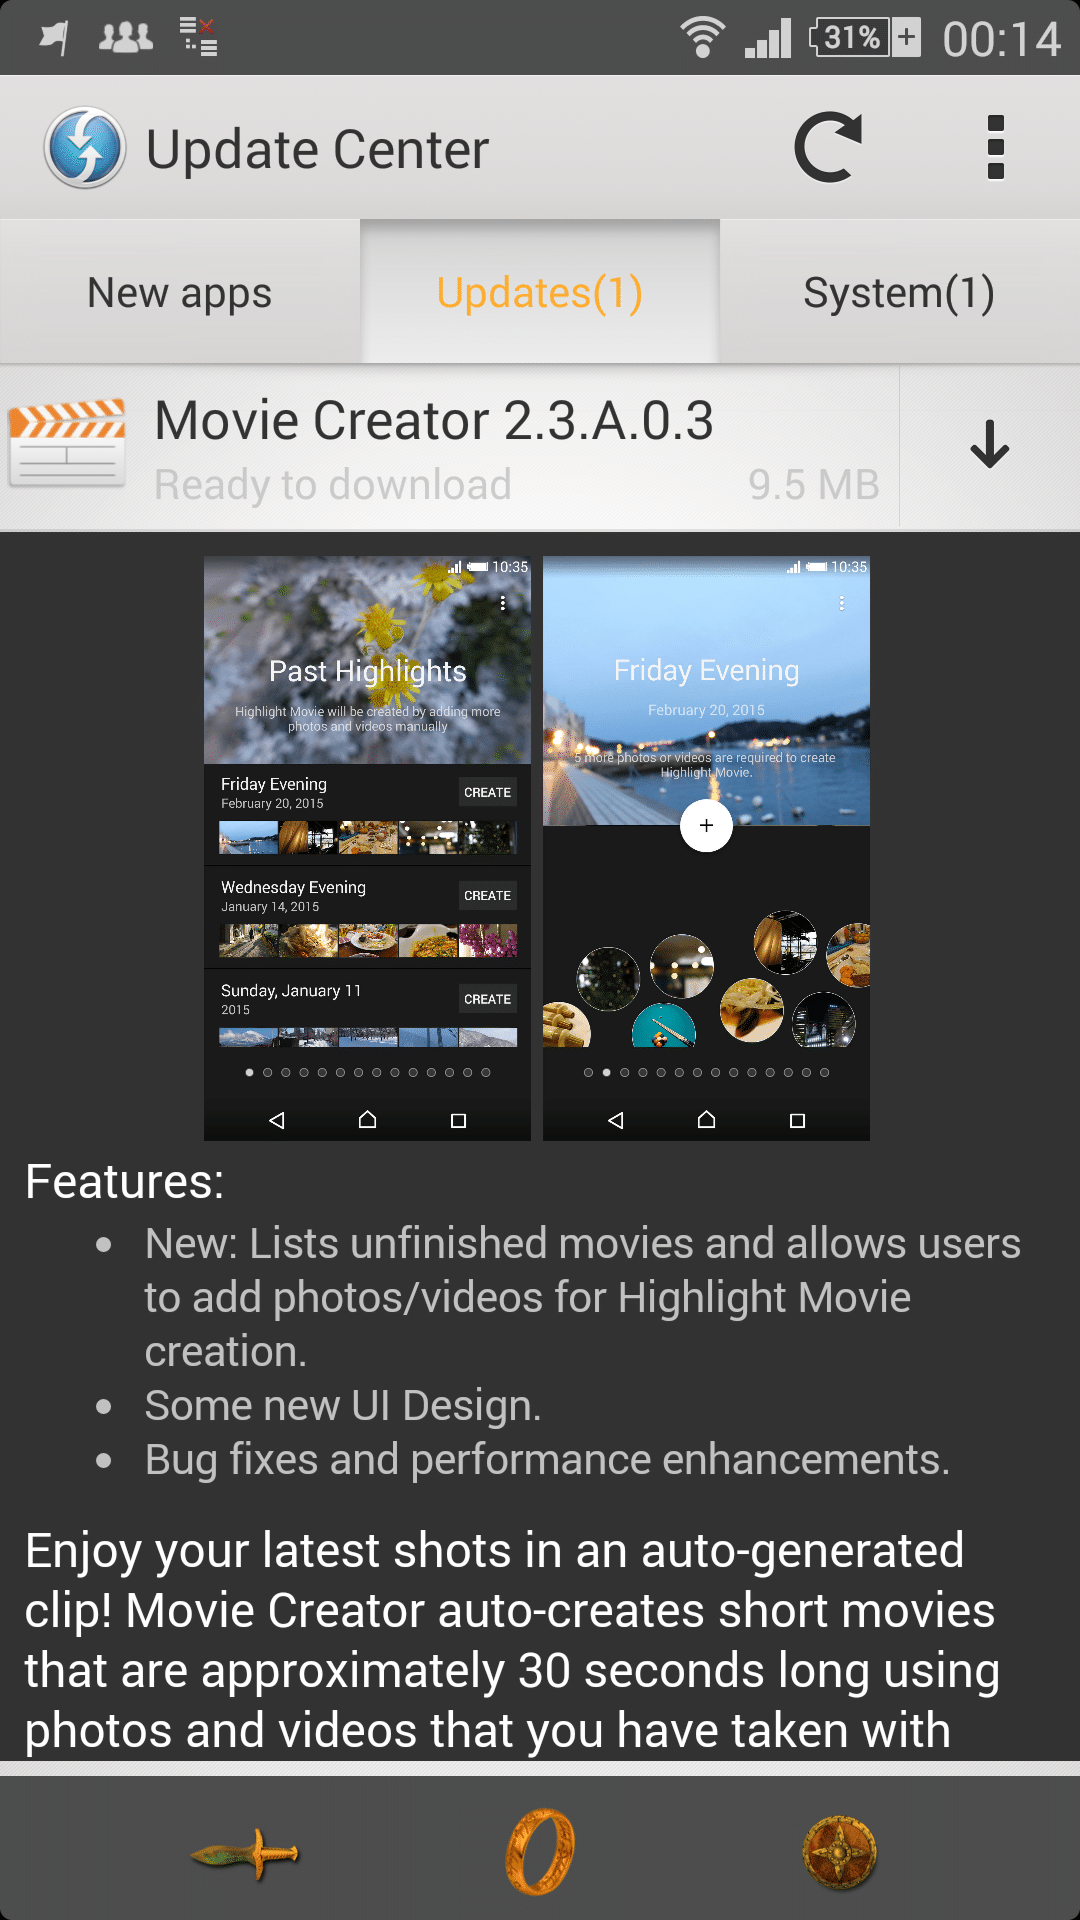 Movie Creator 2.3.A.0.3